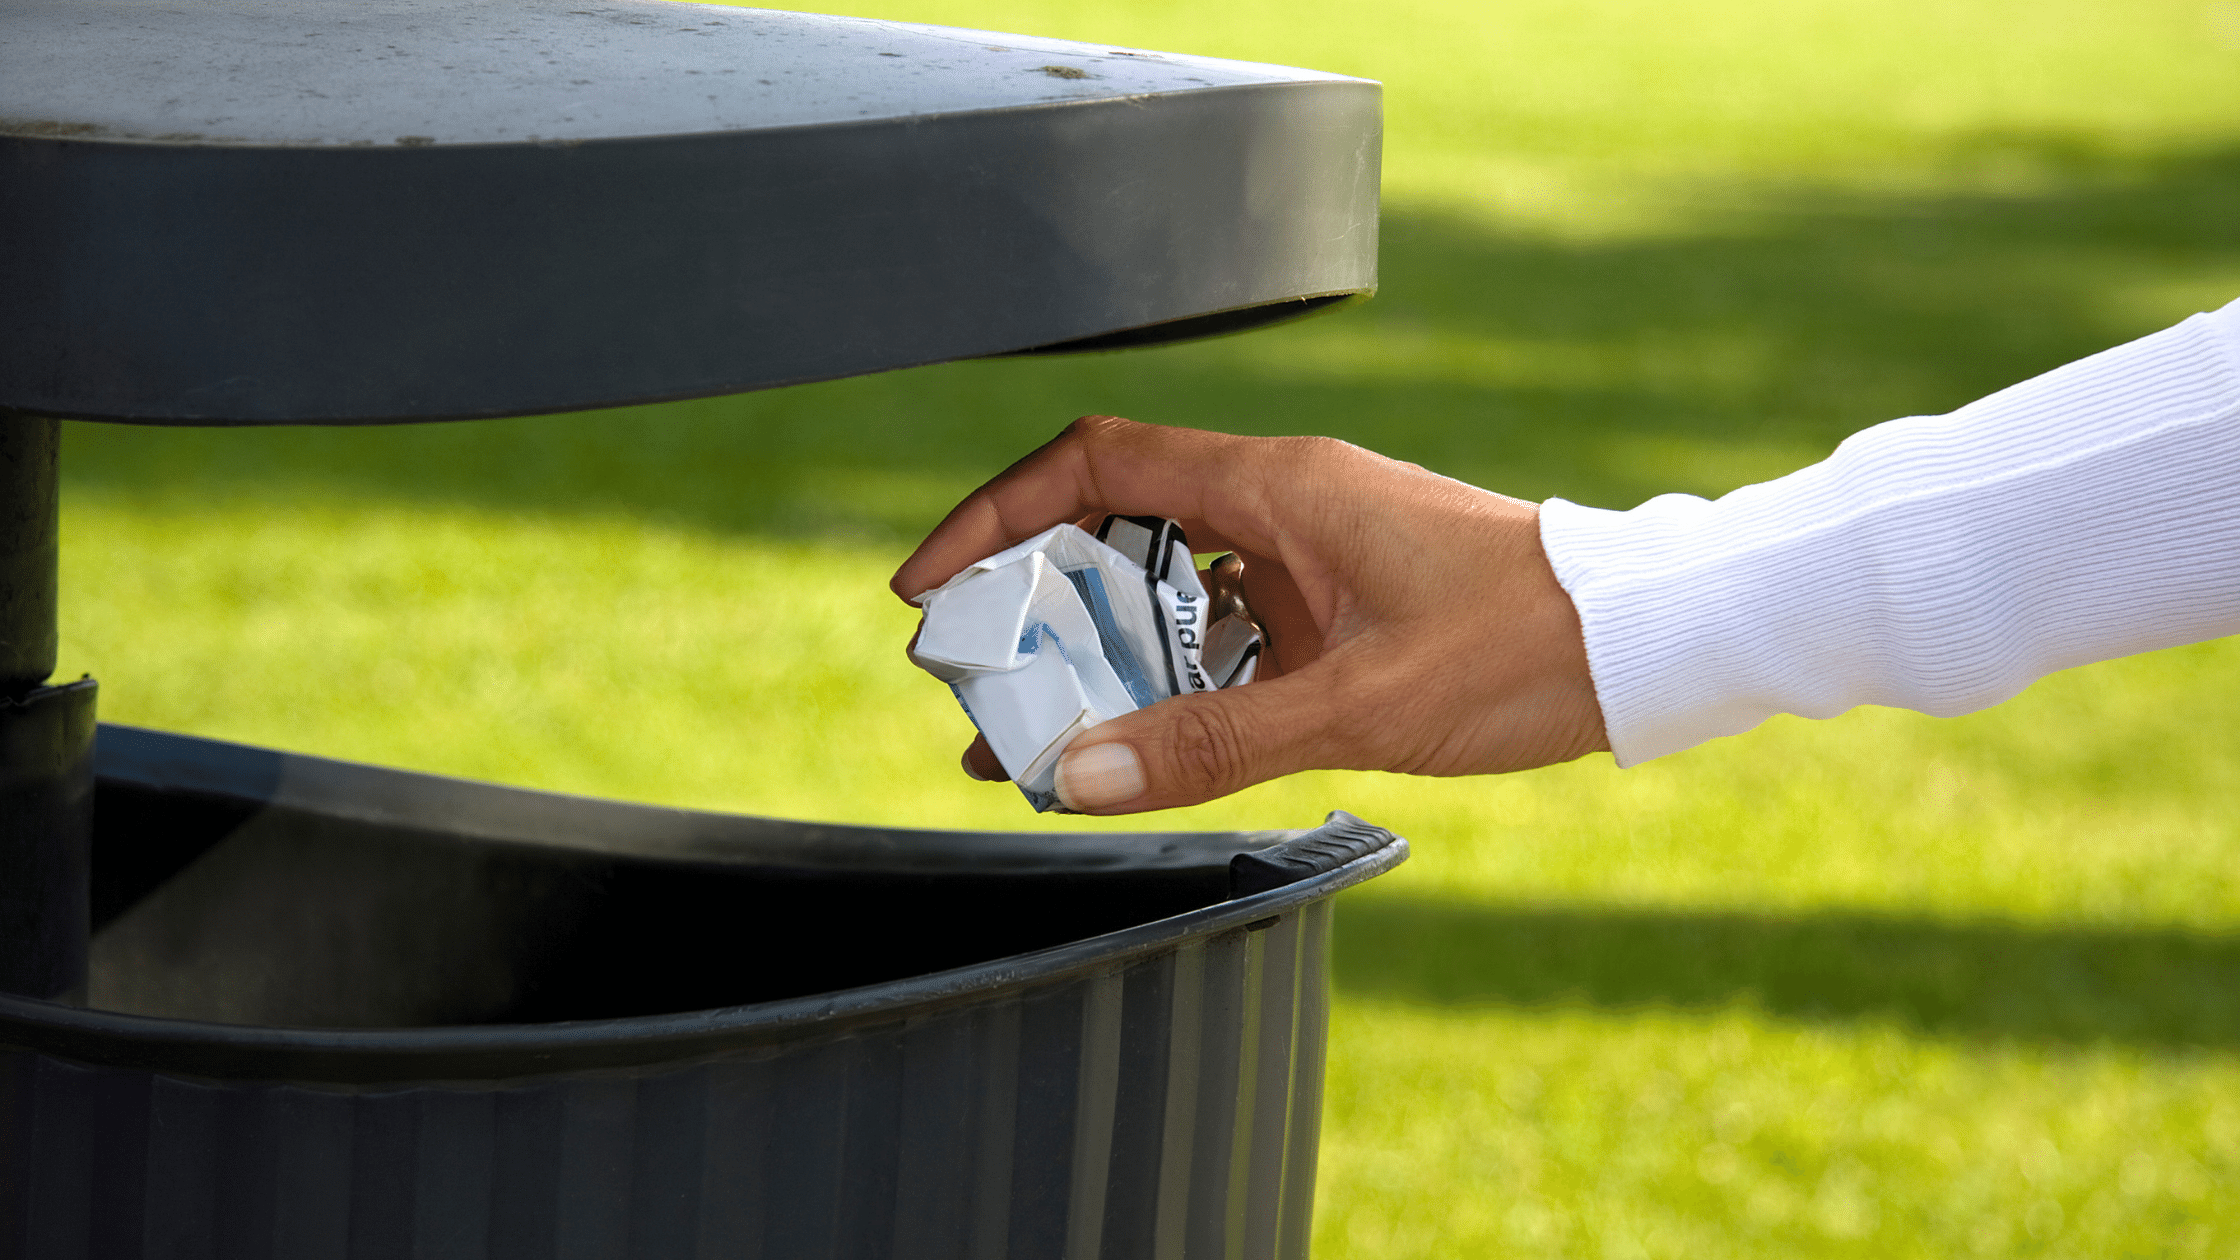 image showing a waste bin and a hand about to throw a ball of paper into the bin opening